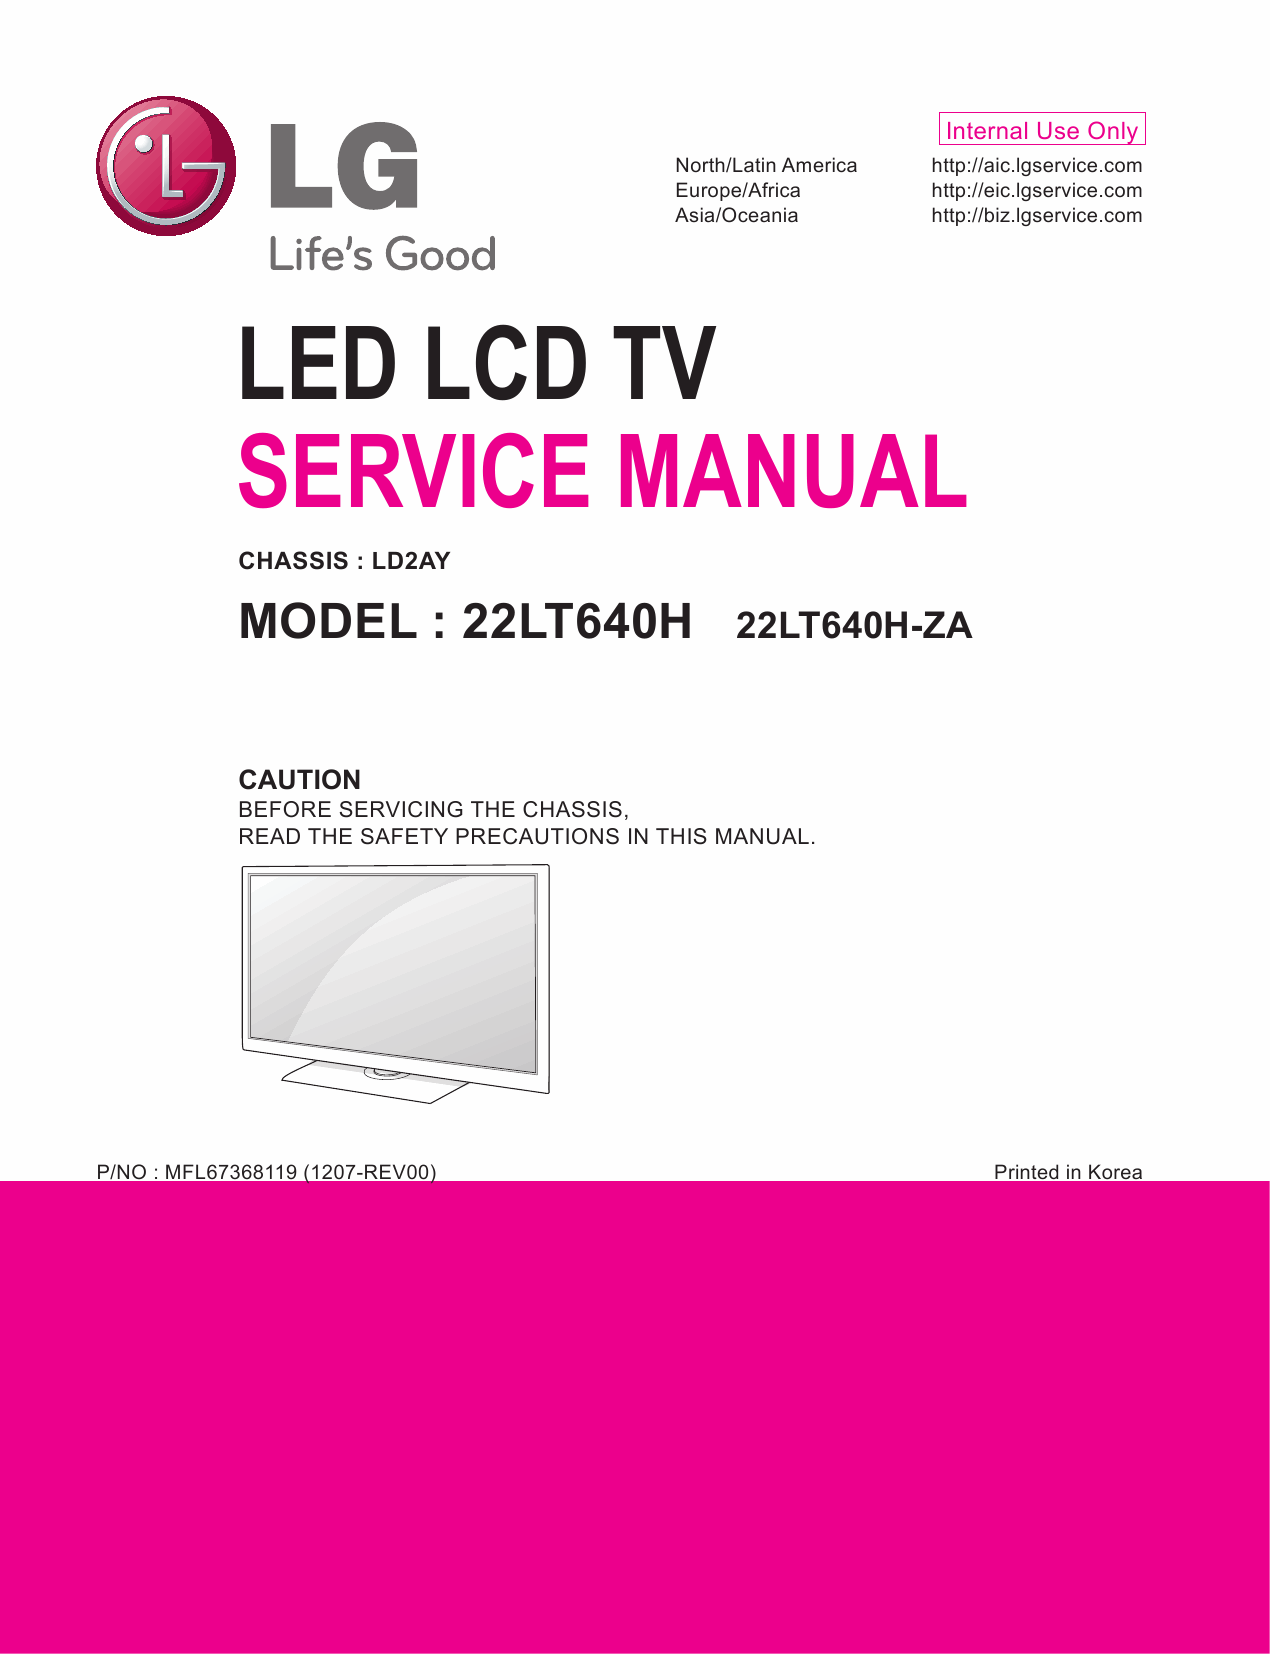 LG_LED_TV_22LT640H_Service_Manual_2012_Qmanual.com-1